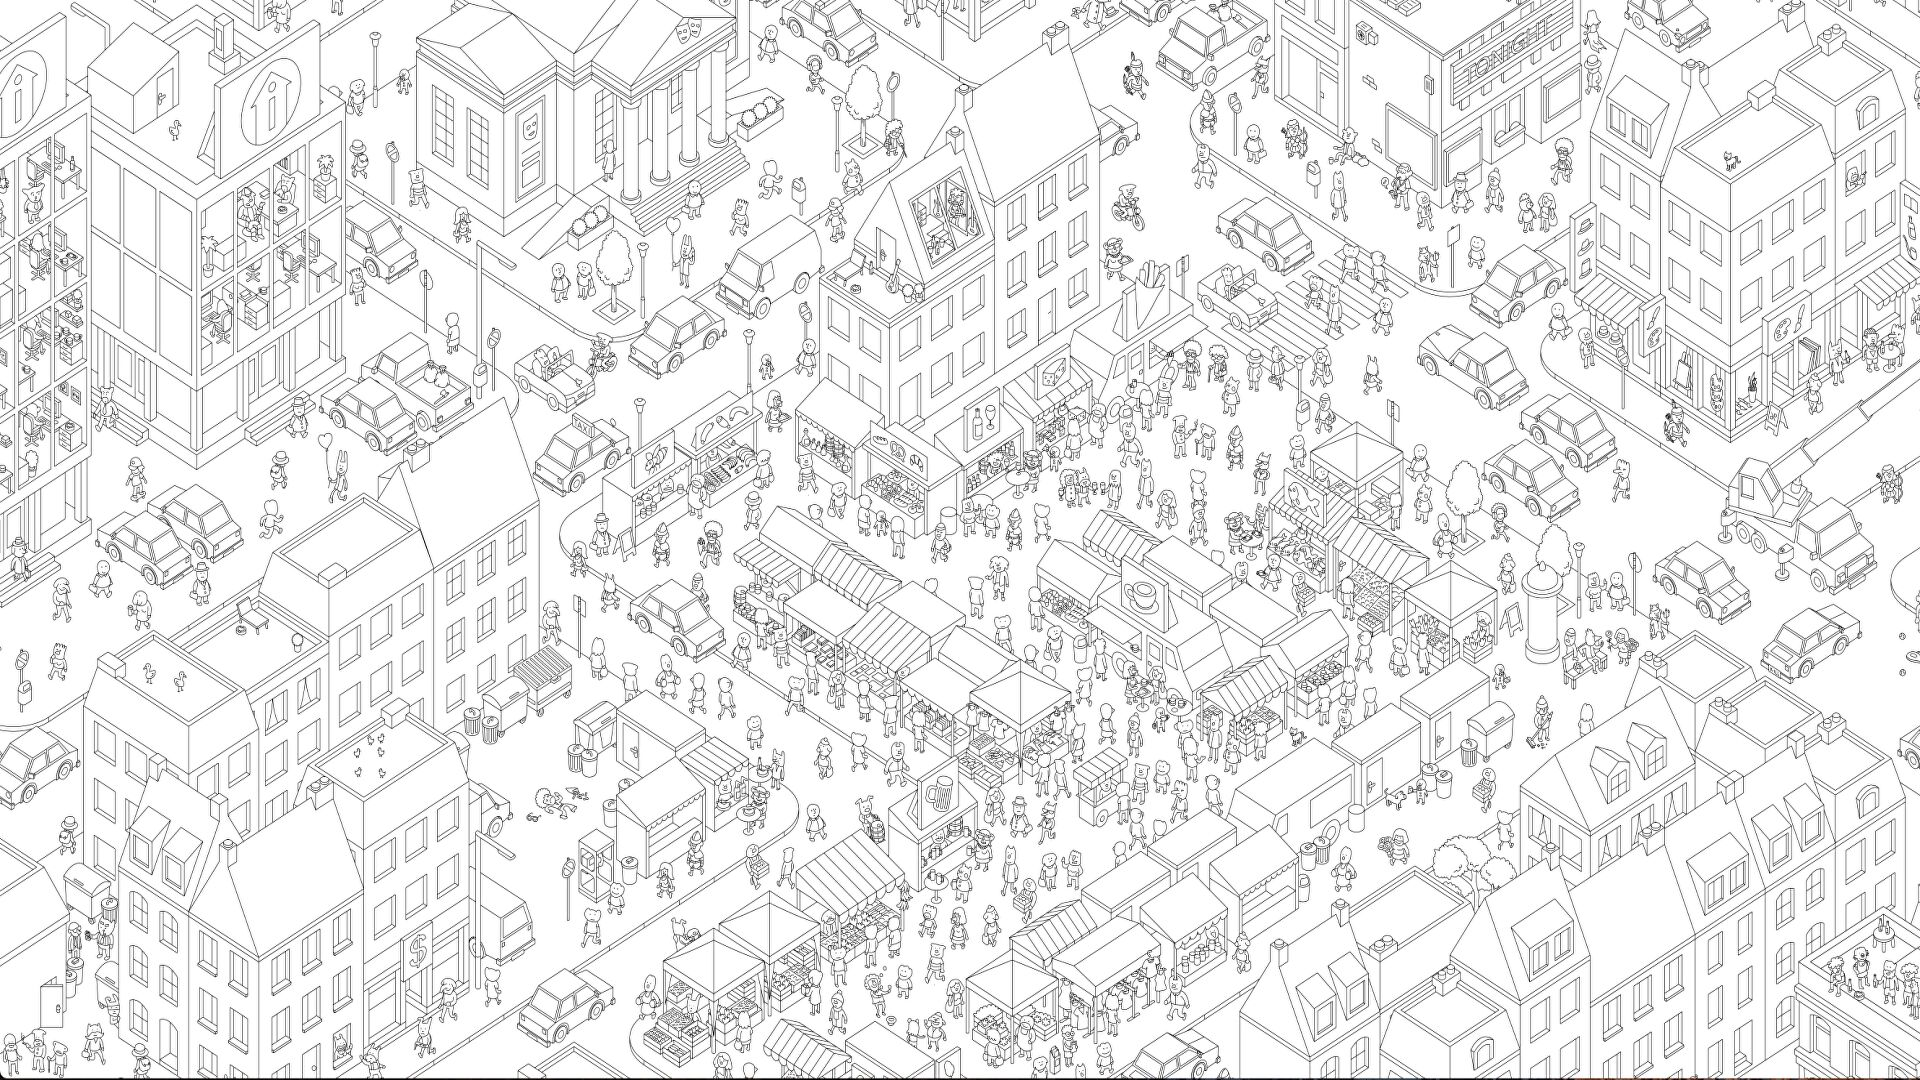 Map-searching puzzle game MicroMacro: Crime City has been named this year's winner of the Spiel des Jahres, the major German 'Game of th